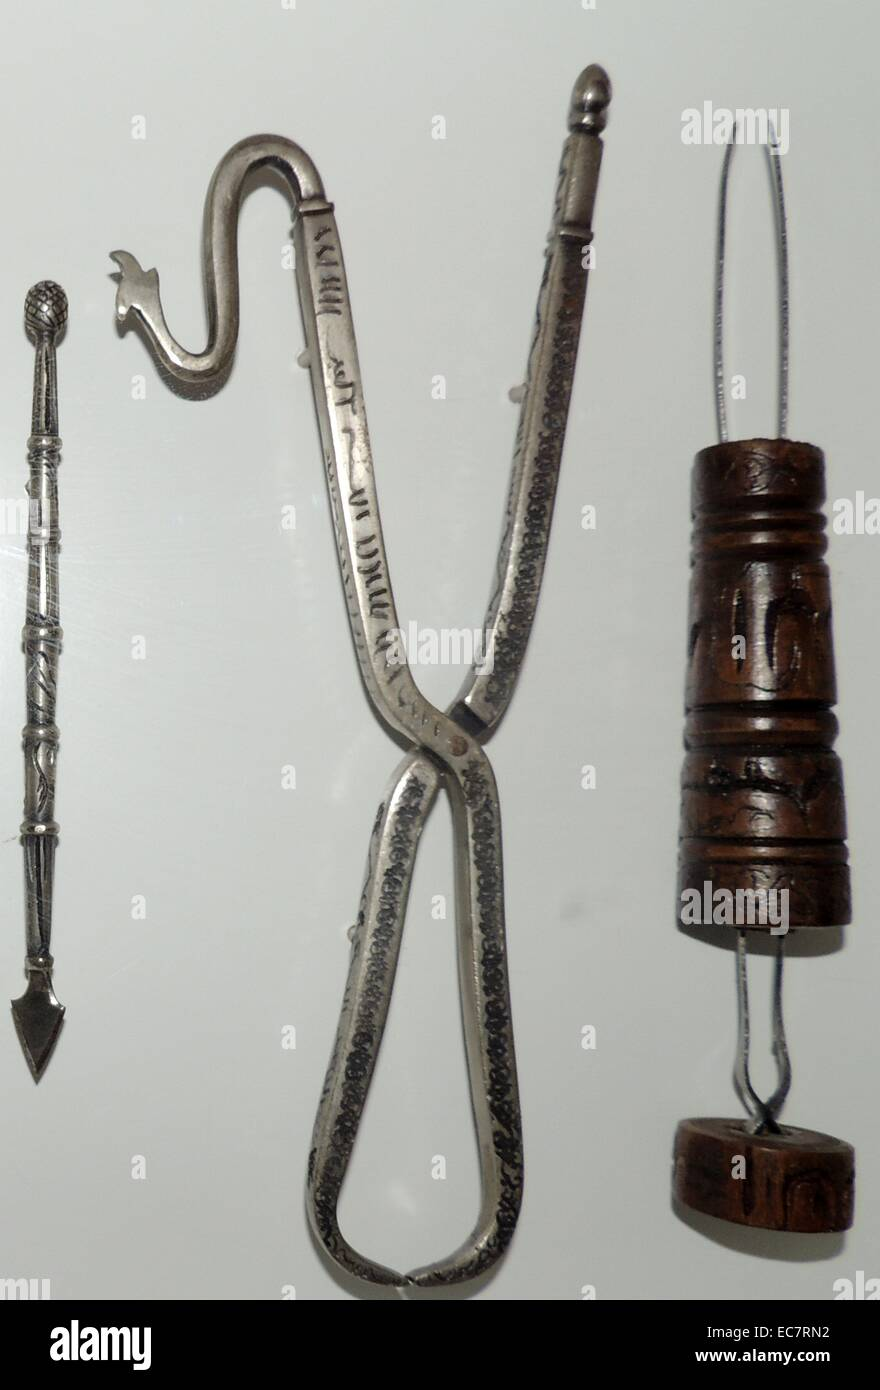 Historical Surgical Tools - Stock Image